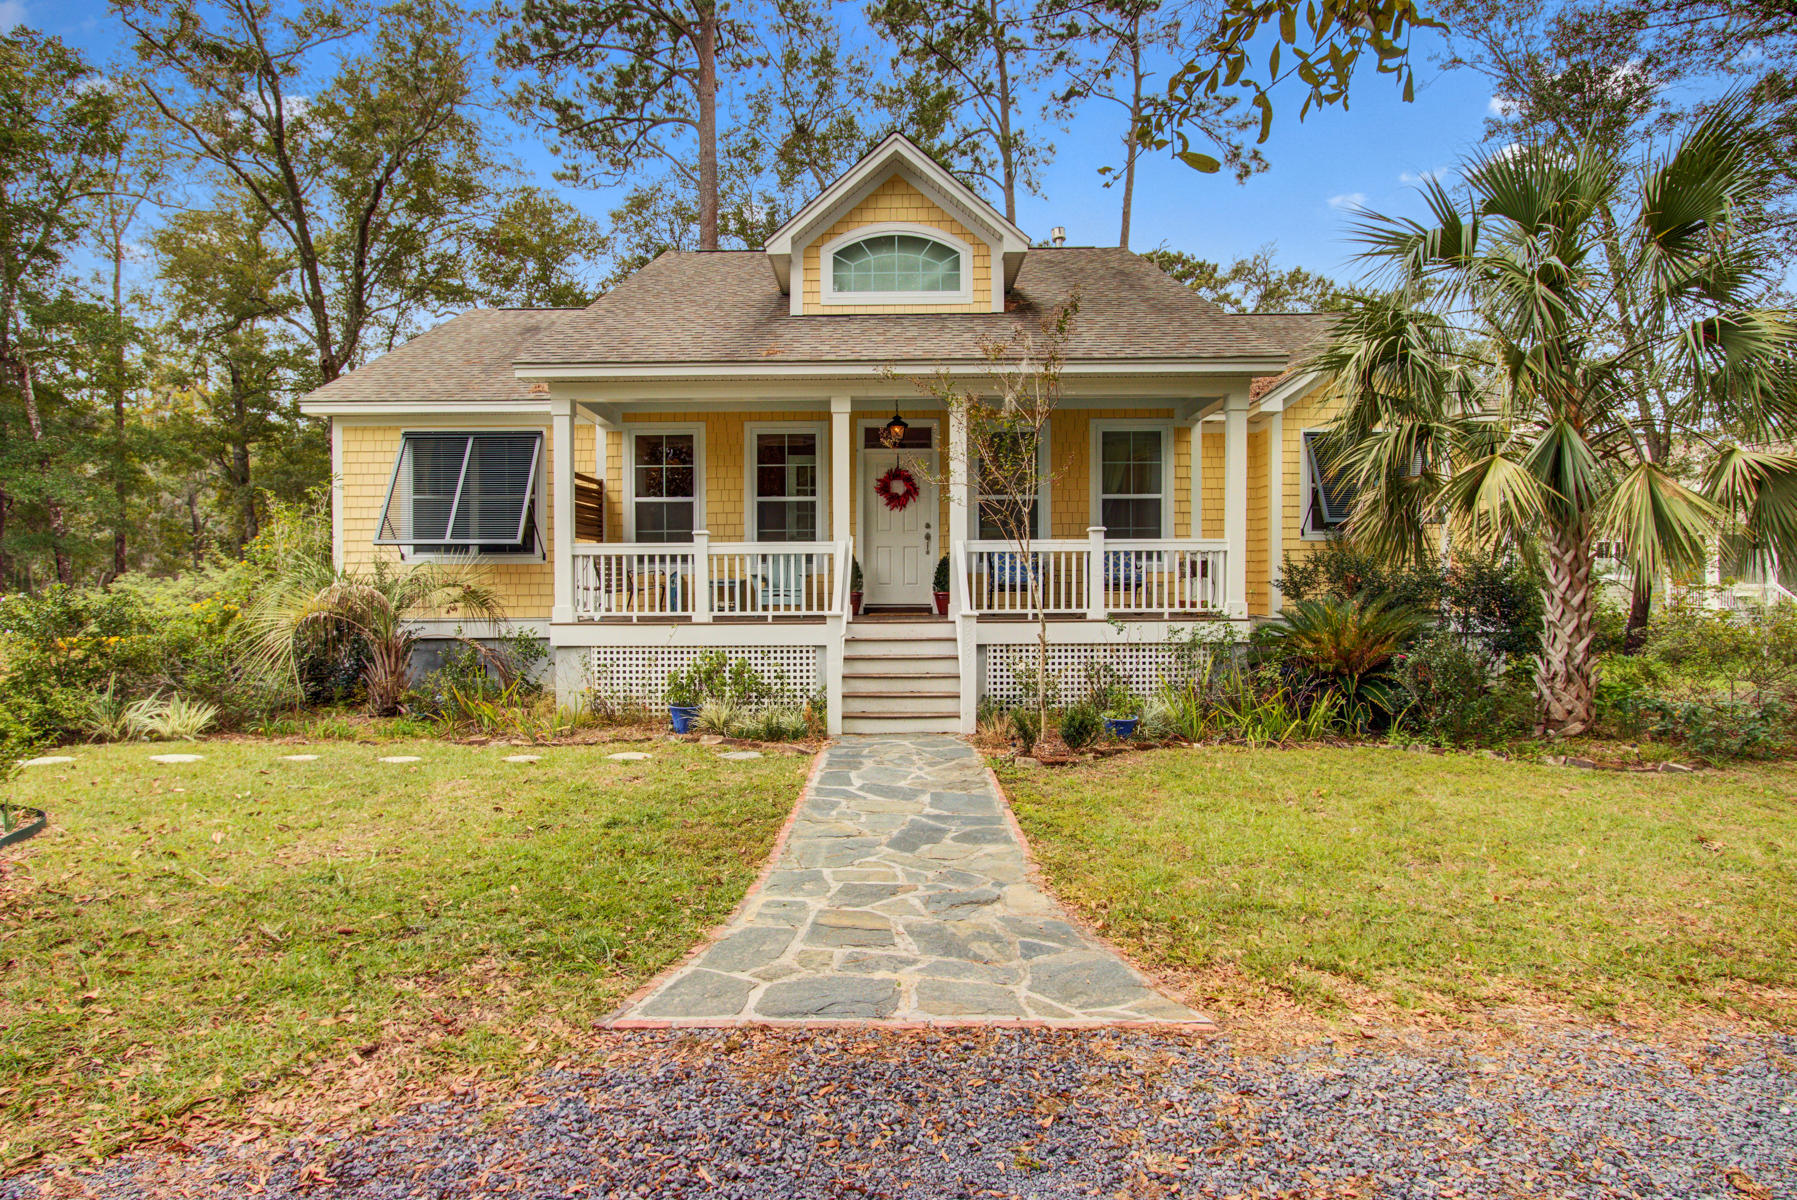 Hickory Hill Estates Homes For Sale - 3339 Hickory Hill, Johns Island, SC - 35